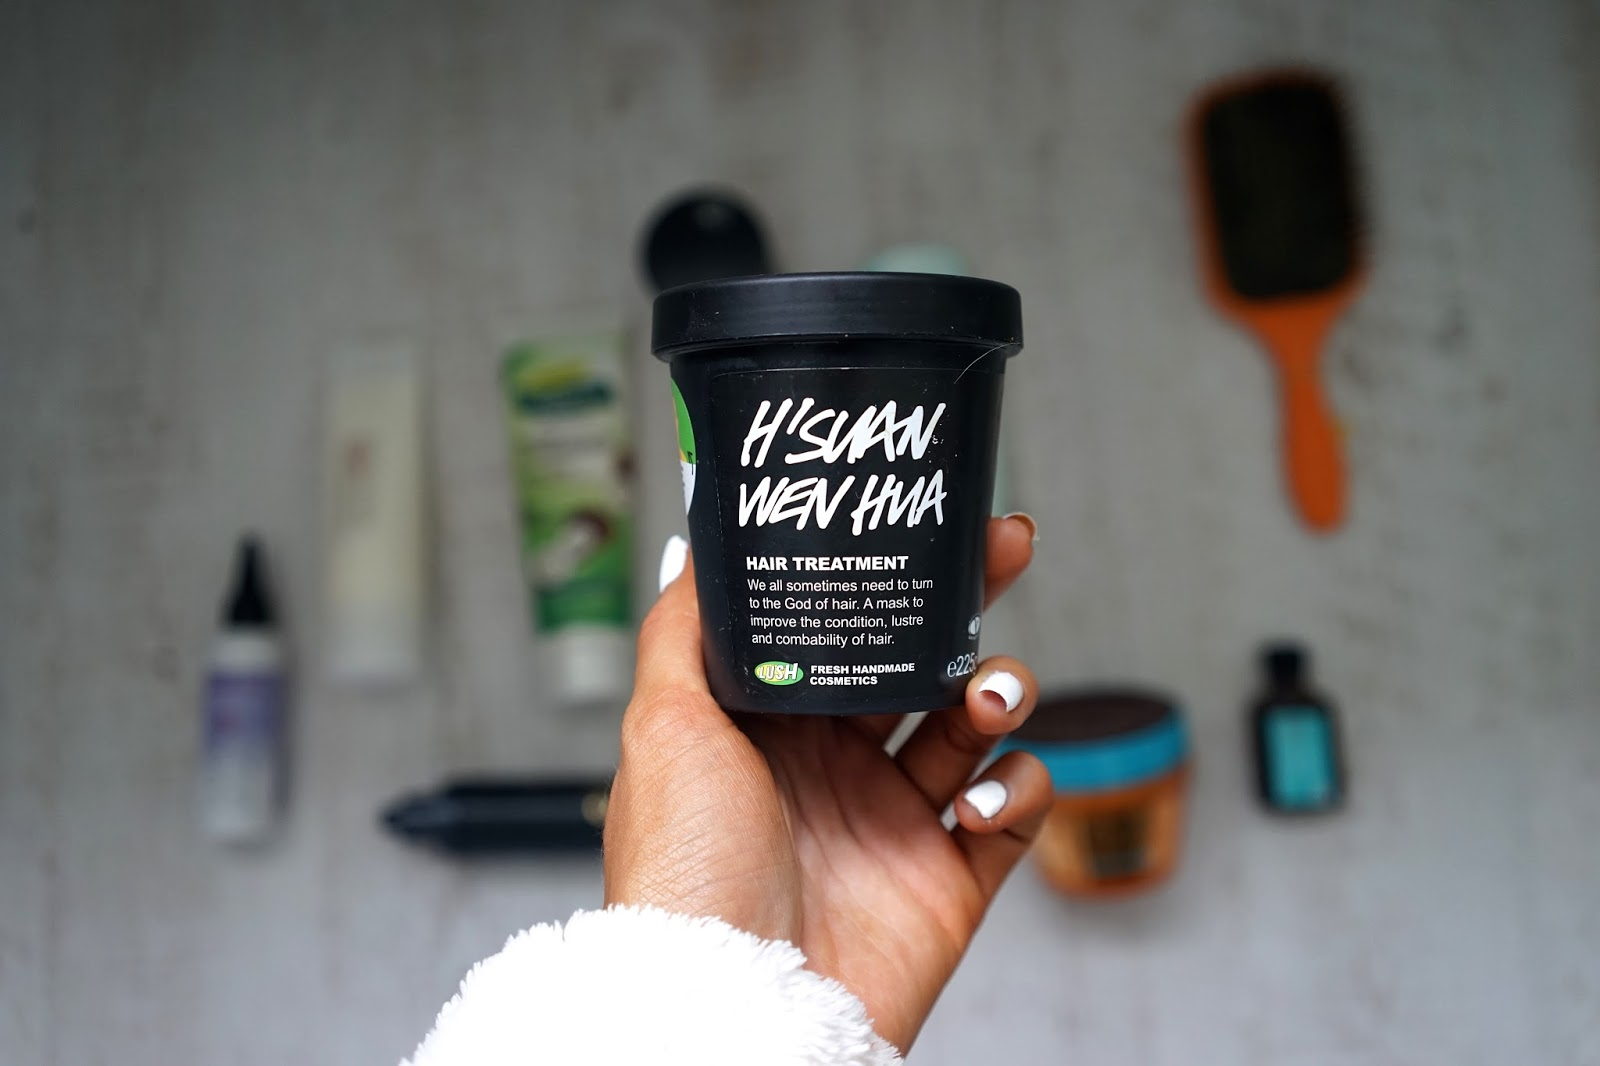 H'Suan Wen Hua hair treatment lush